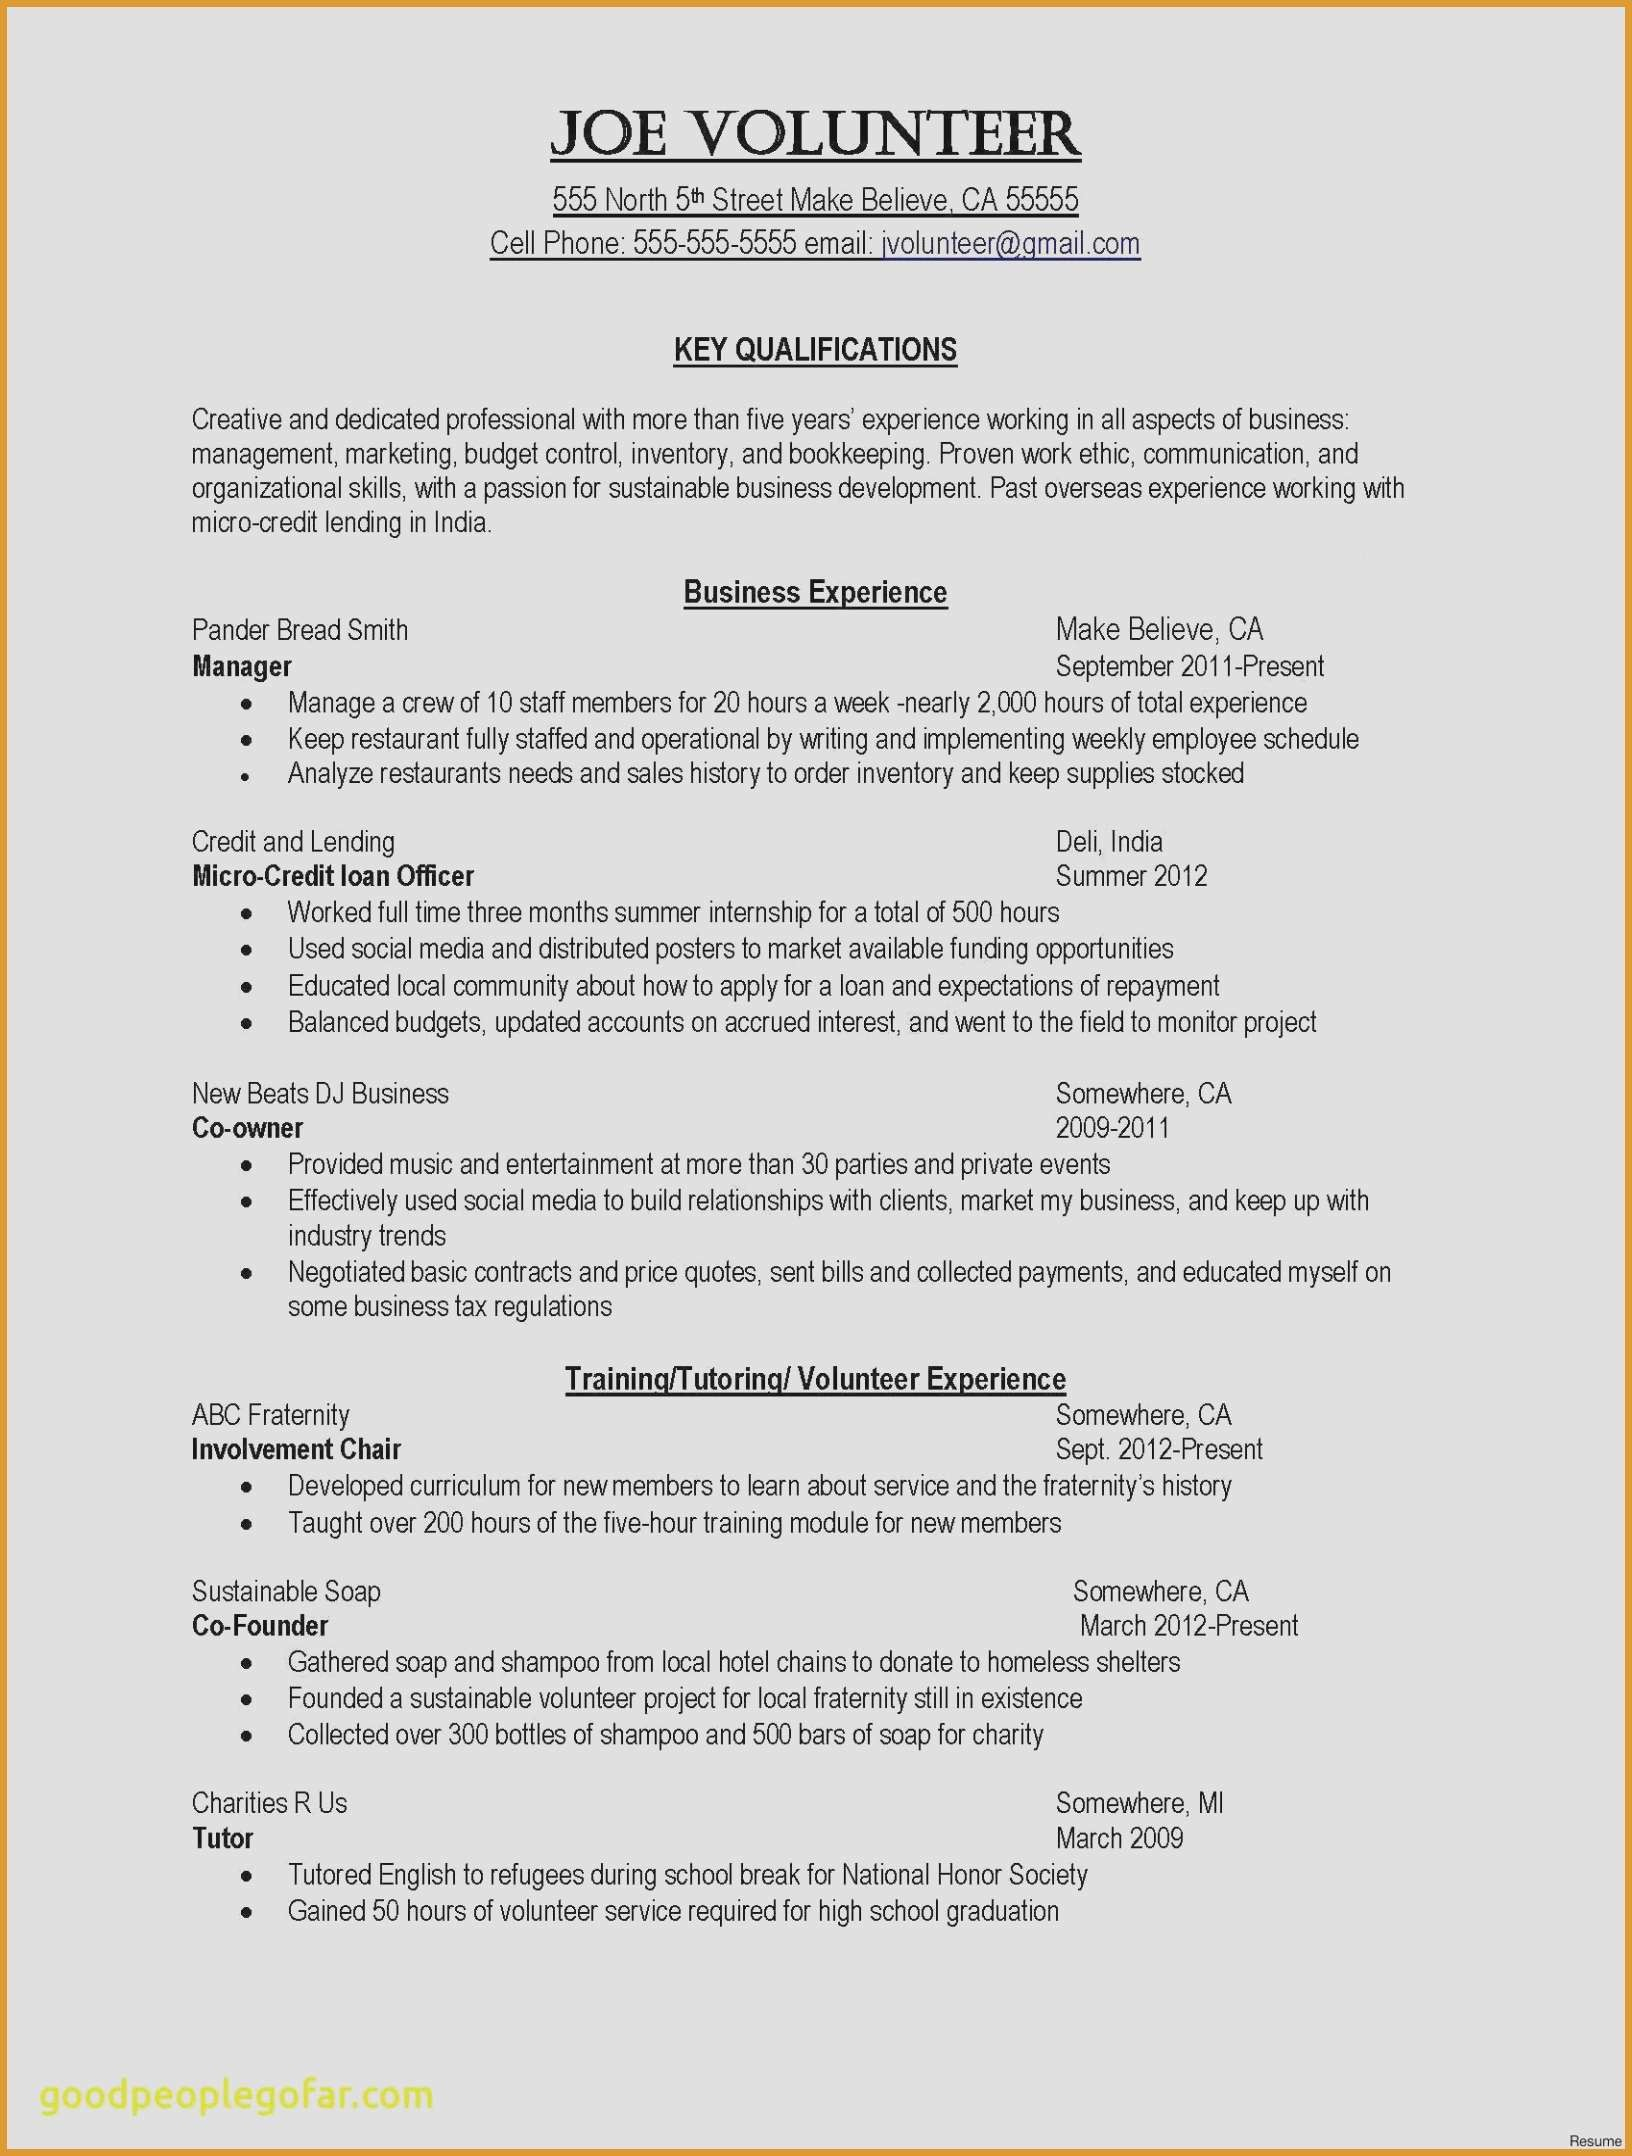 Social Media Manager Resume Example - Inventory Control Resume Beautiful Resumes Skills Examples Resume